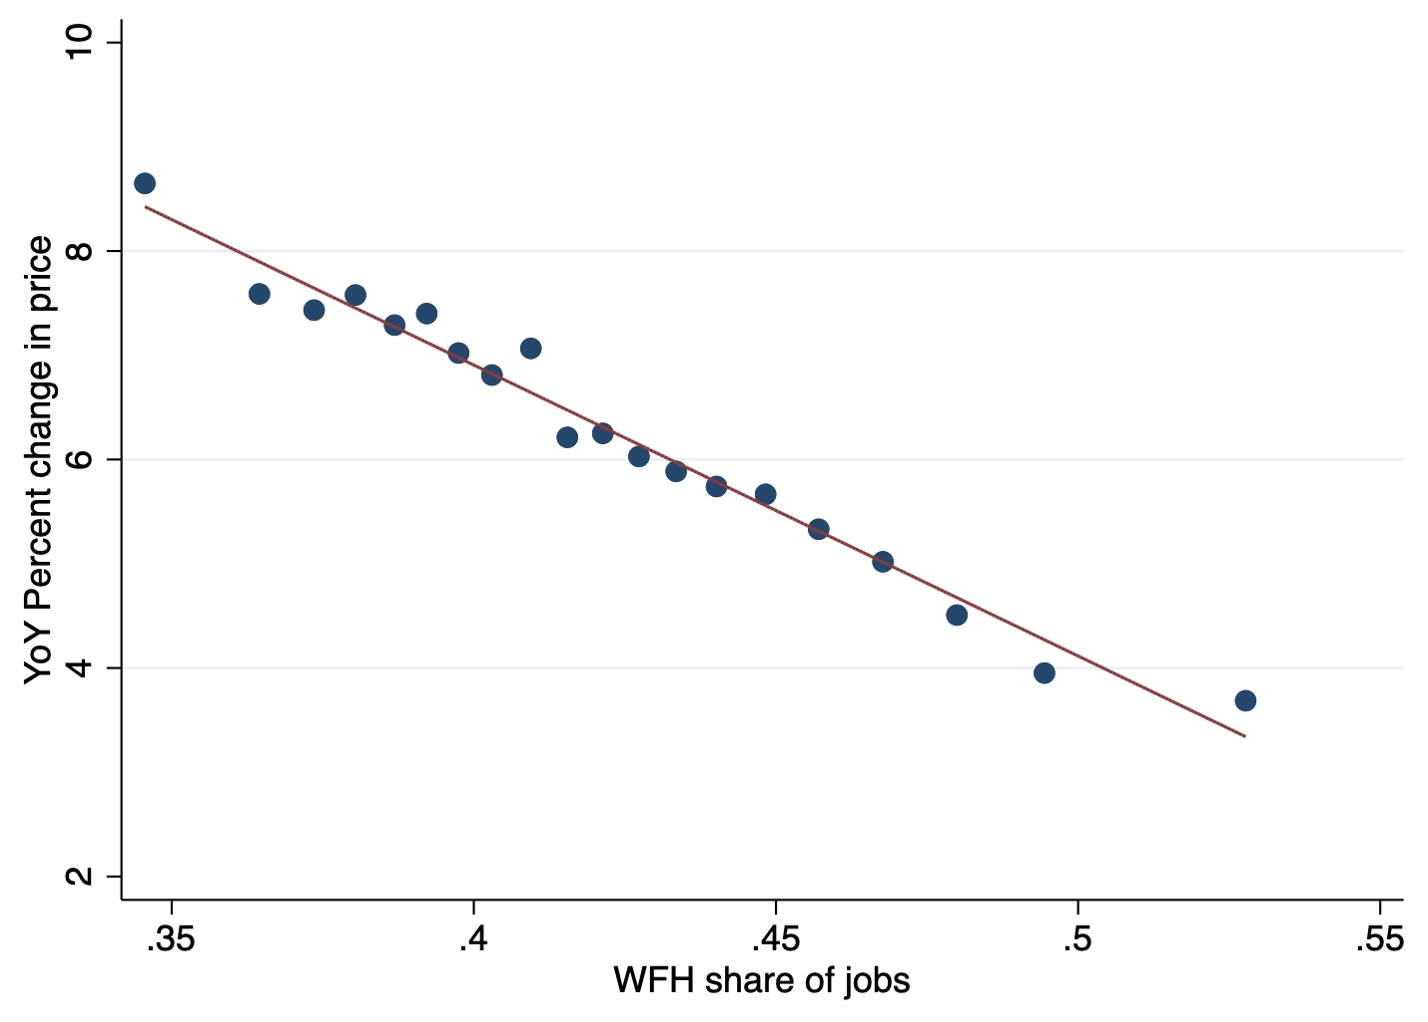 c44b4 bloom28janfig4 The doughnut effect of COVID 19 on cities | VOX, CEPR Policy Portal   voxeu.org